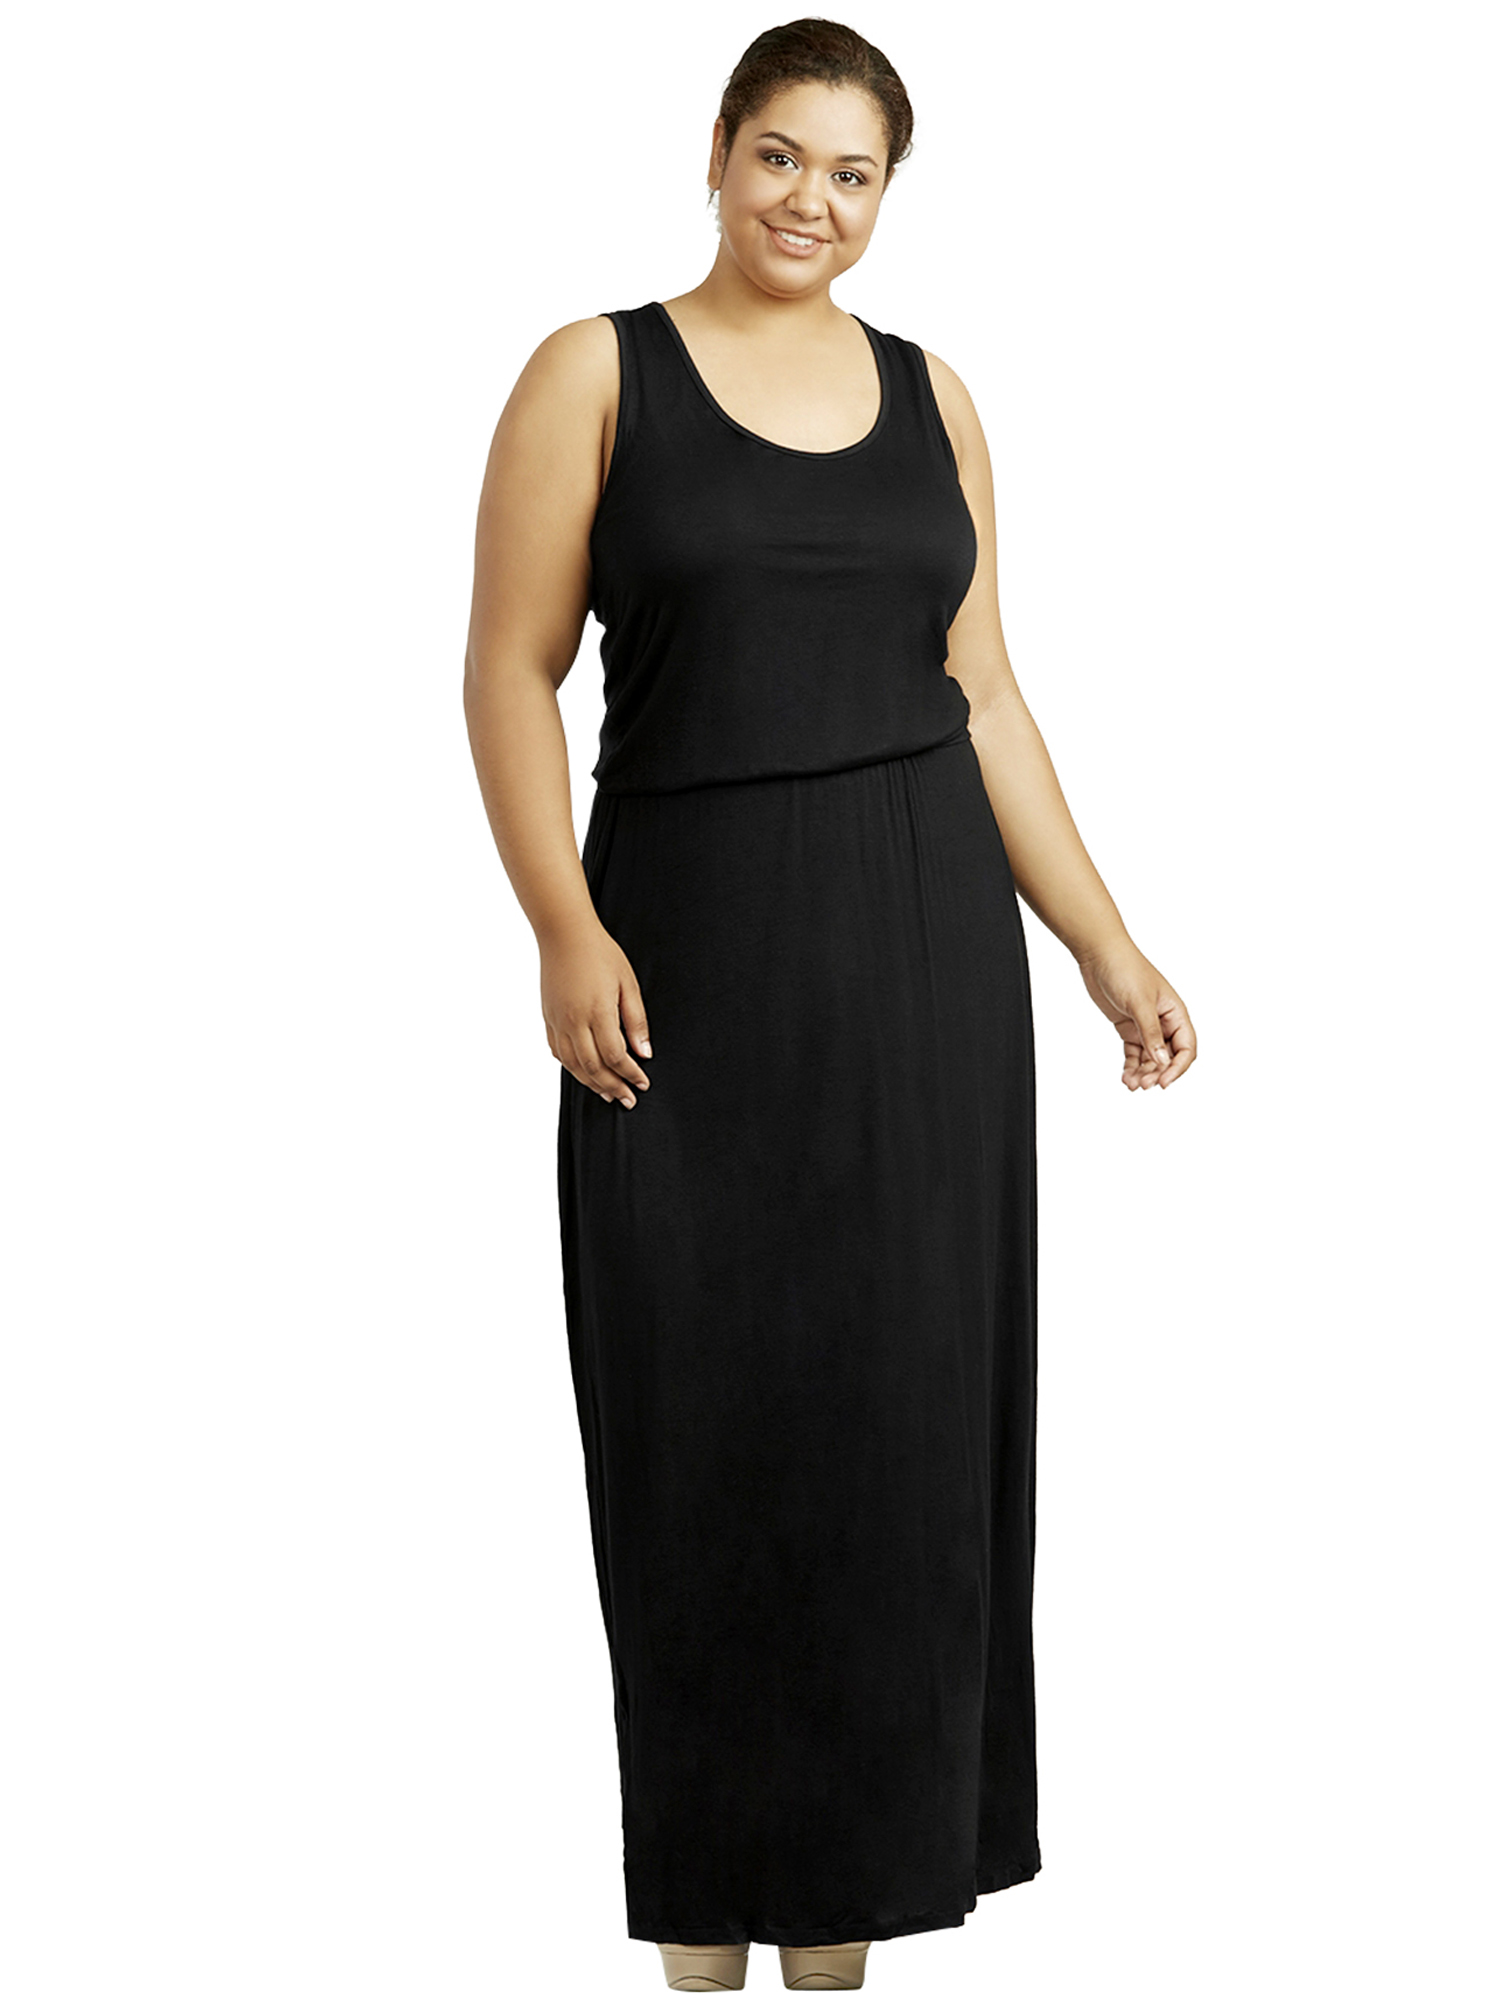 WOMENS PLUS SIZE ELASTIC WAIST LONG DRESS